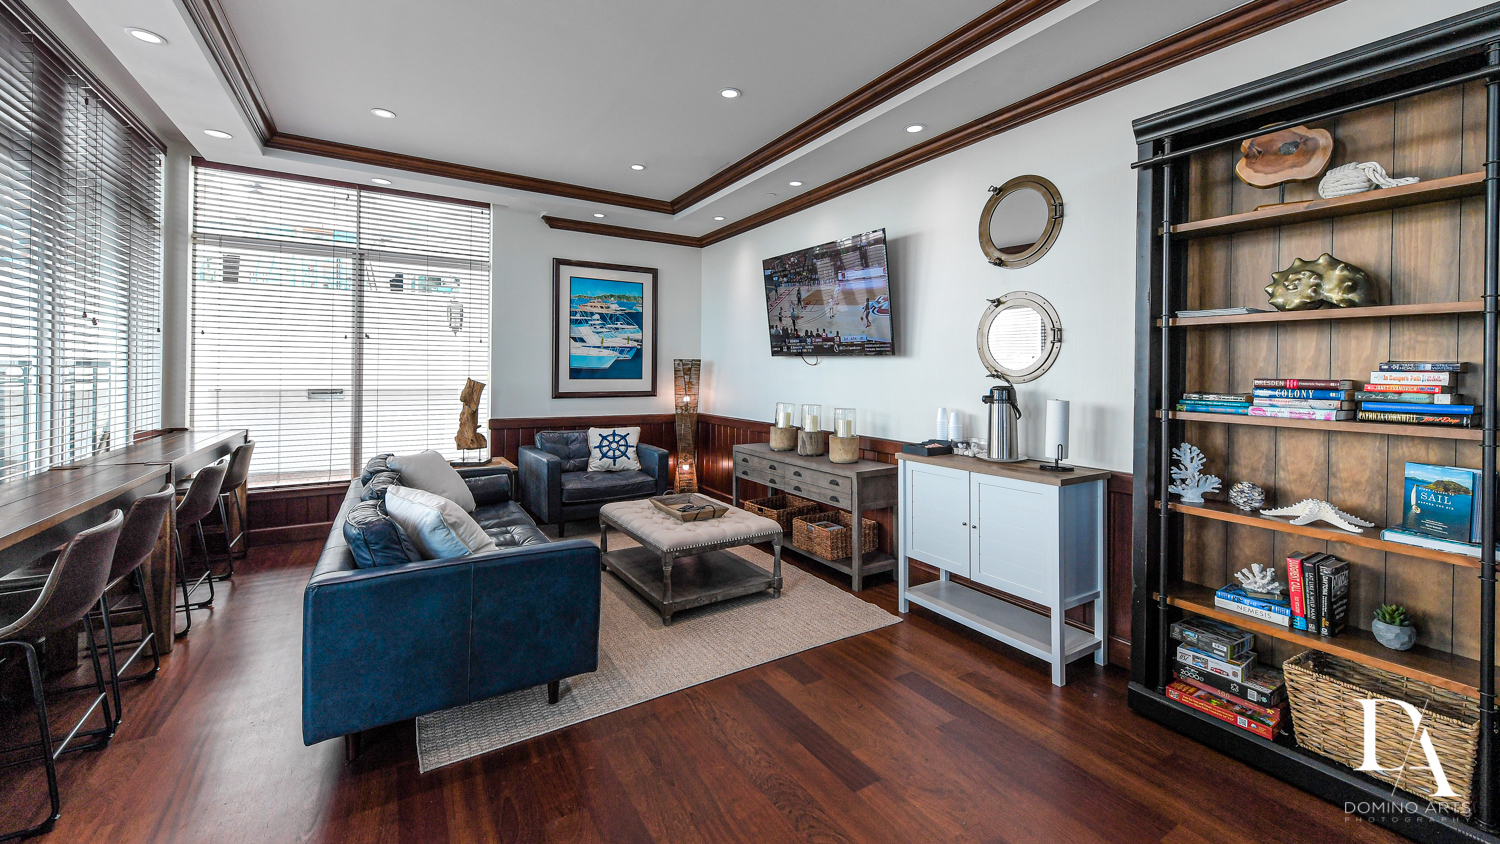 luxury changing rooms at Harborage Yacht Club & Marina by Domino Arts Photography